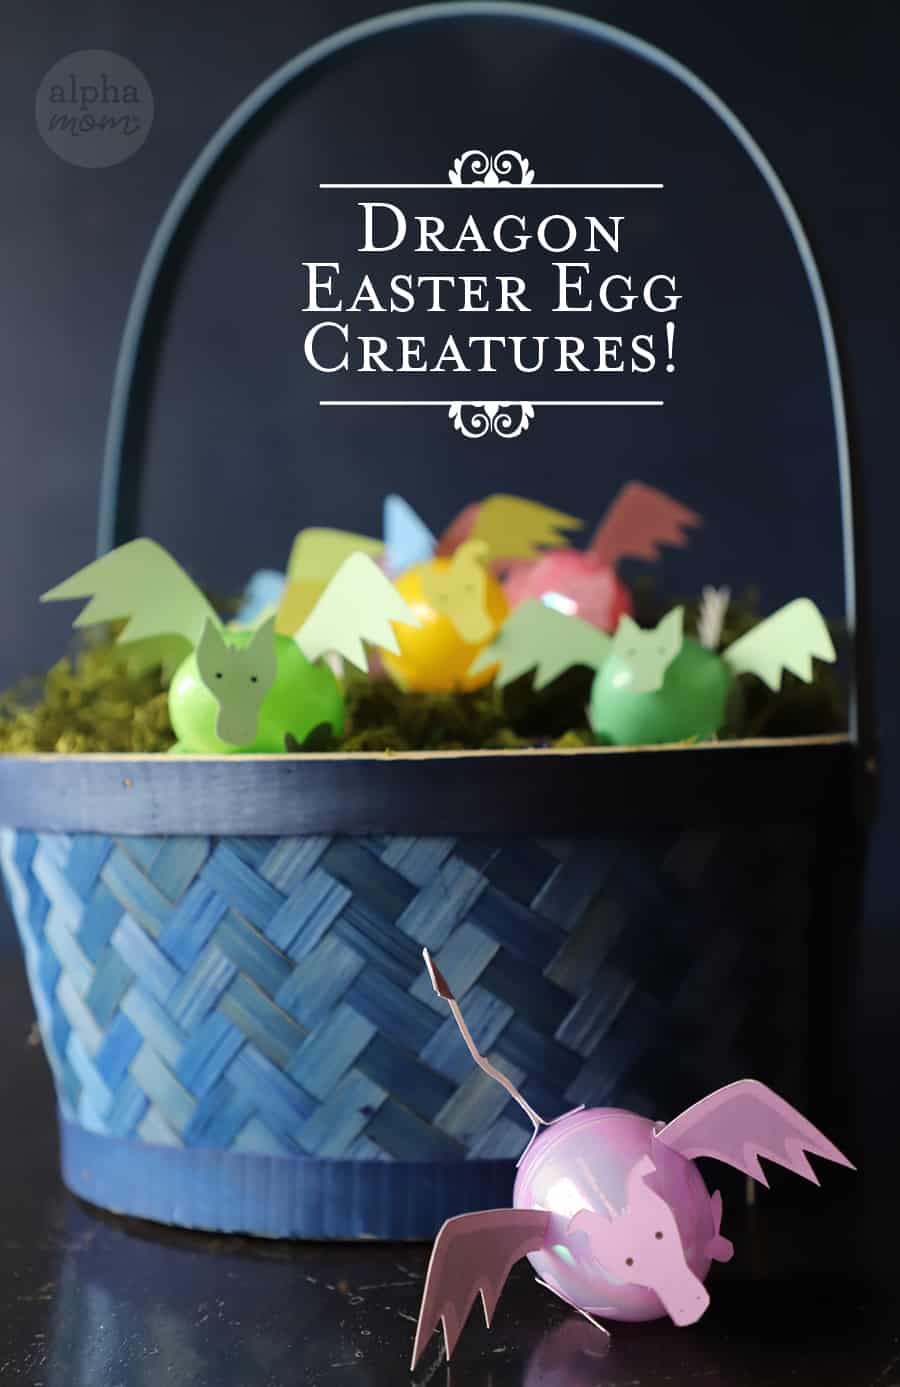 Easter basket filled with colorful plastic eggs transformed into little dragon creatures using paper craft